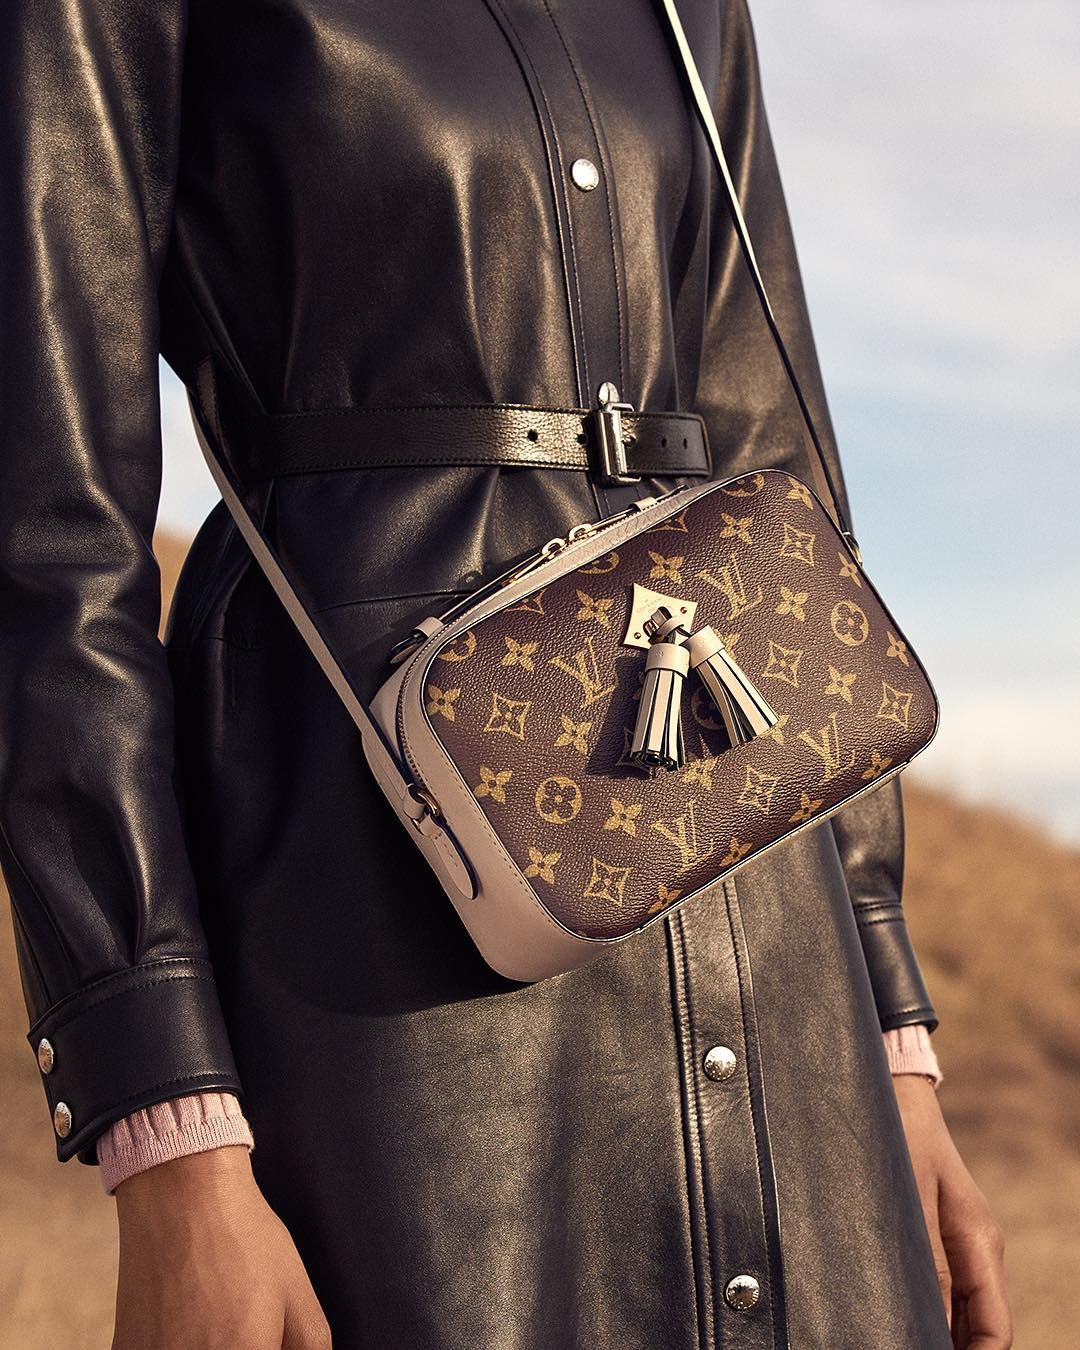 3b2f6e3cf4 Ready for freedom and adventure. Experience #LouisVuitton's Spirit ...